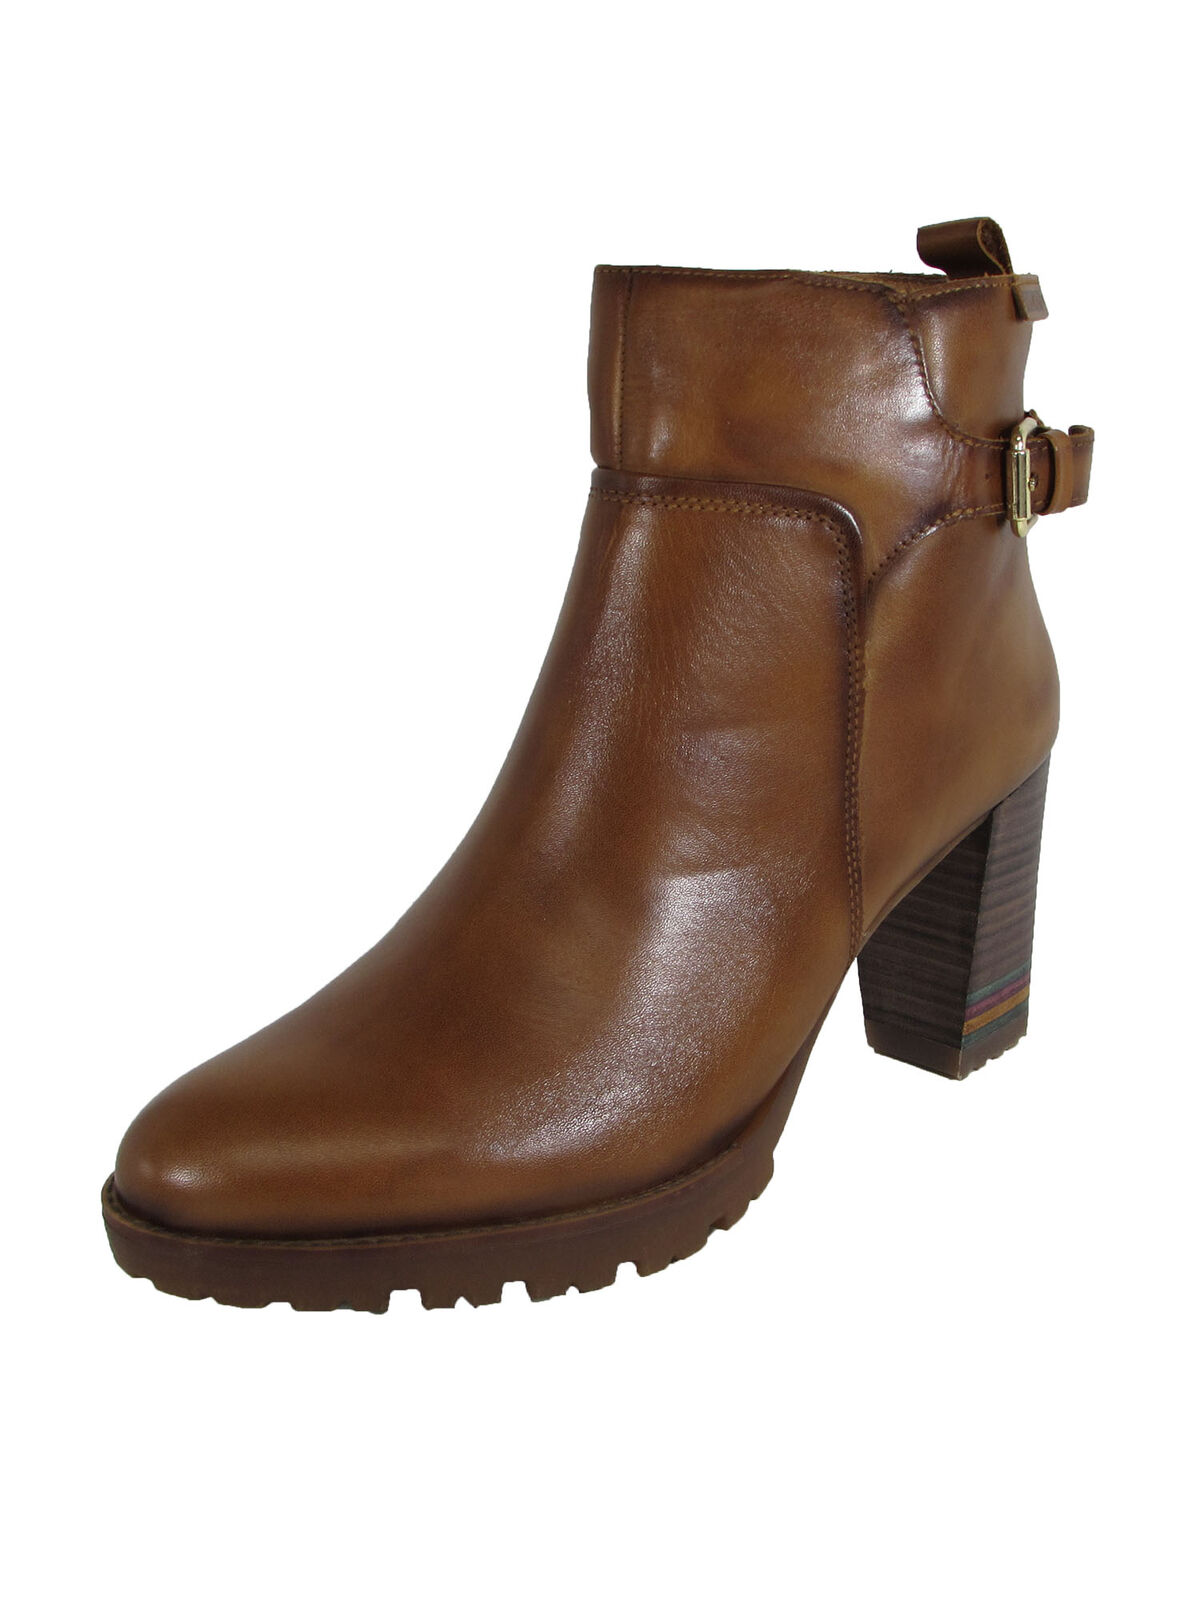 Pikolinos Womens Connelly W7M-8616 Ankle Boots, Brandy, 42 M EU / 11.5-12 M US